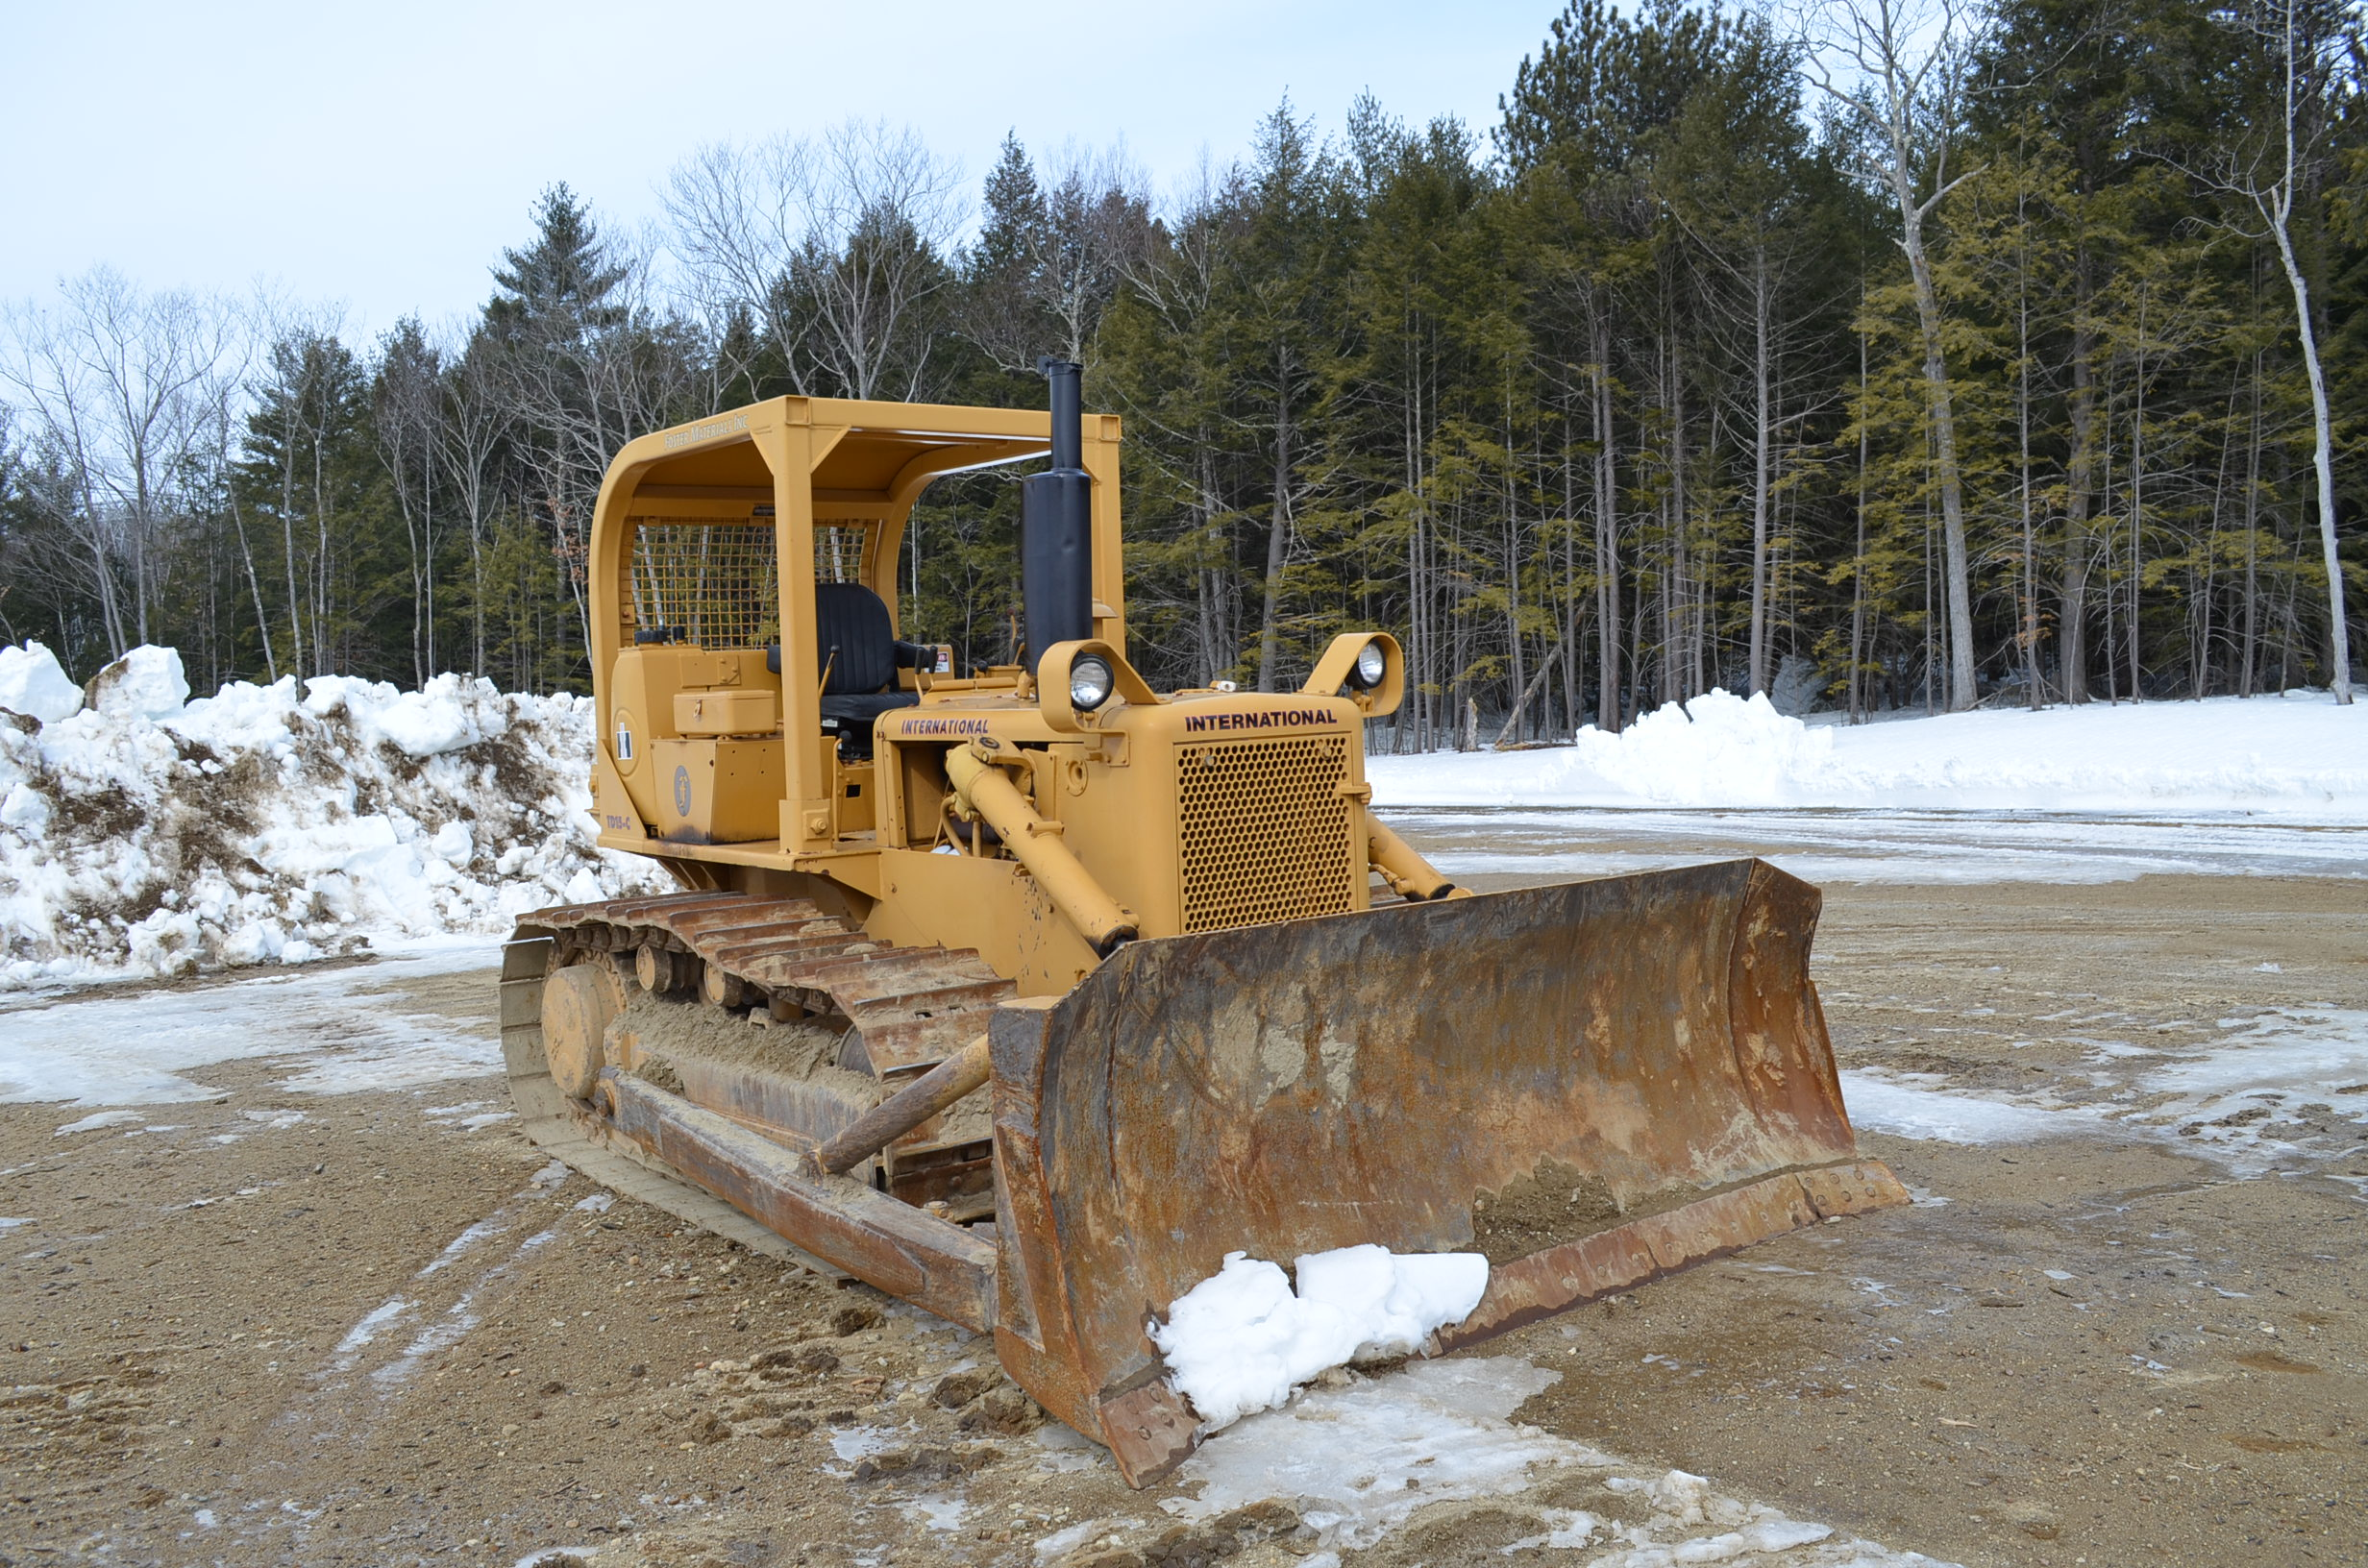 Used construction equipment for sale in New Hampshire - Used